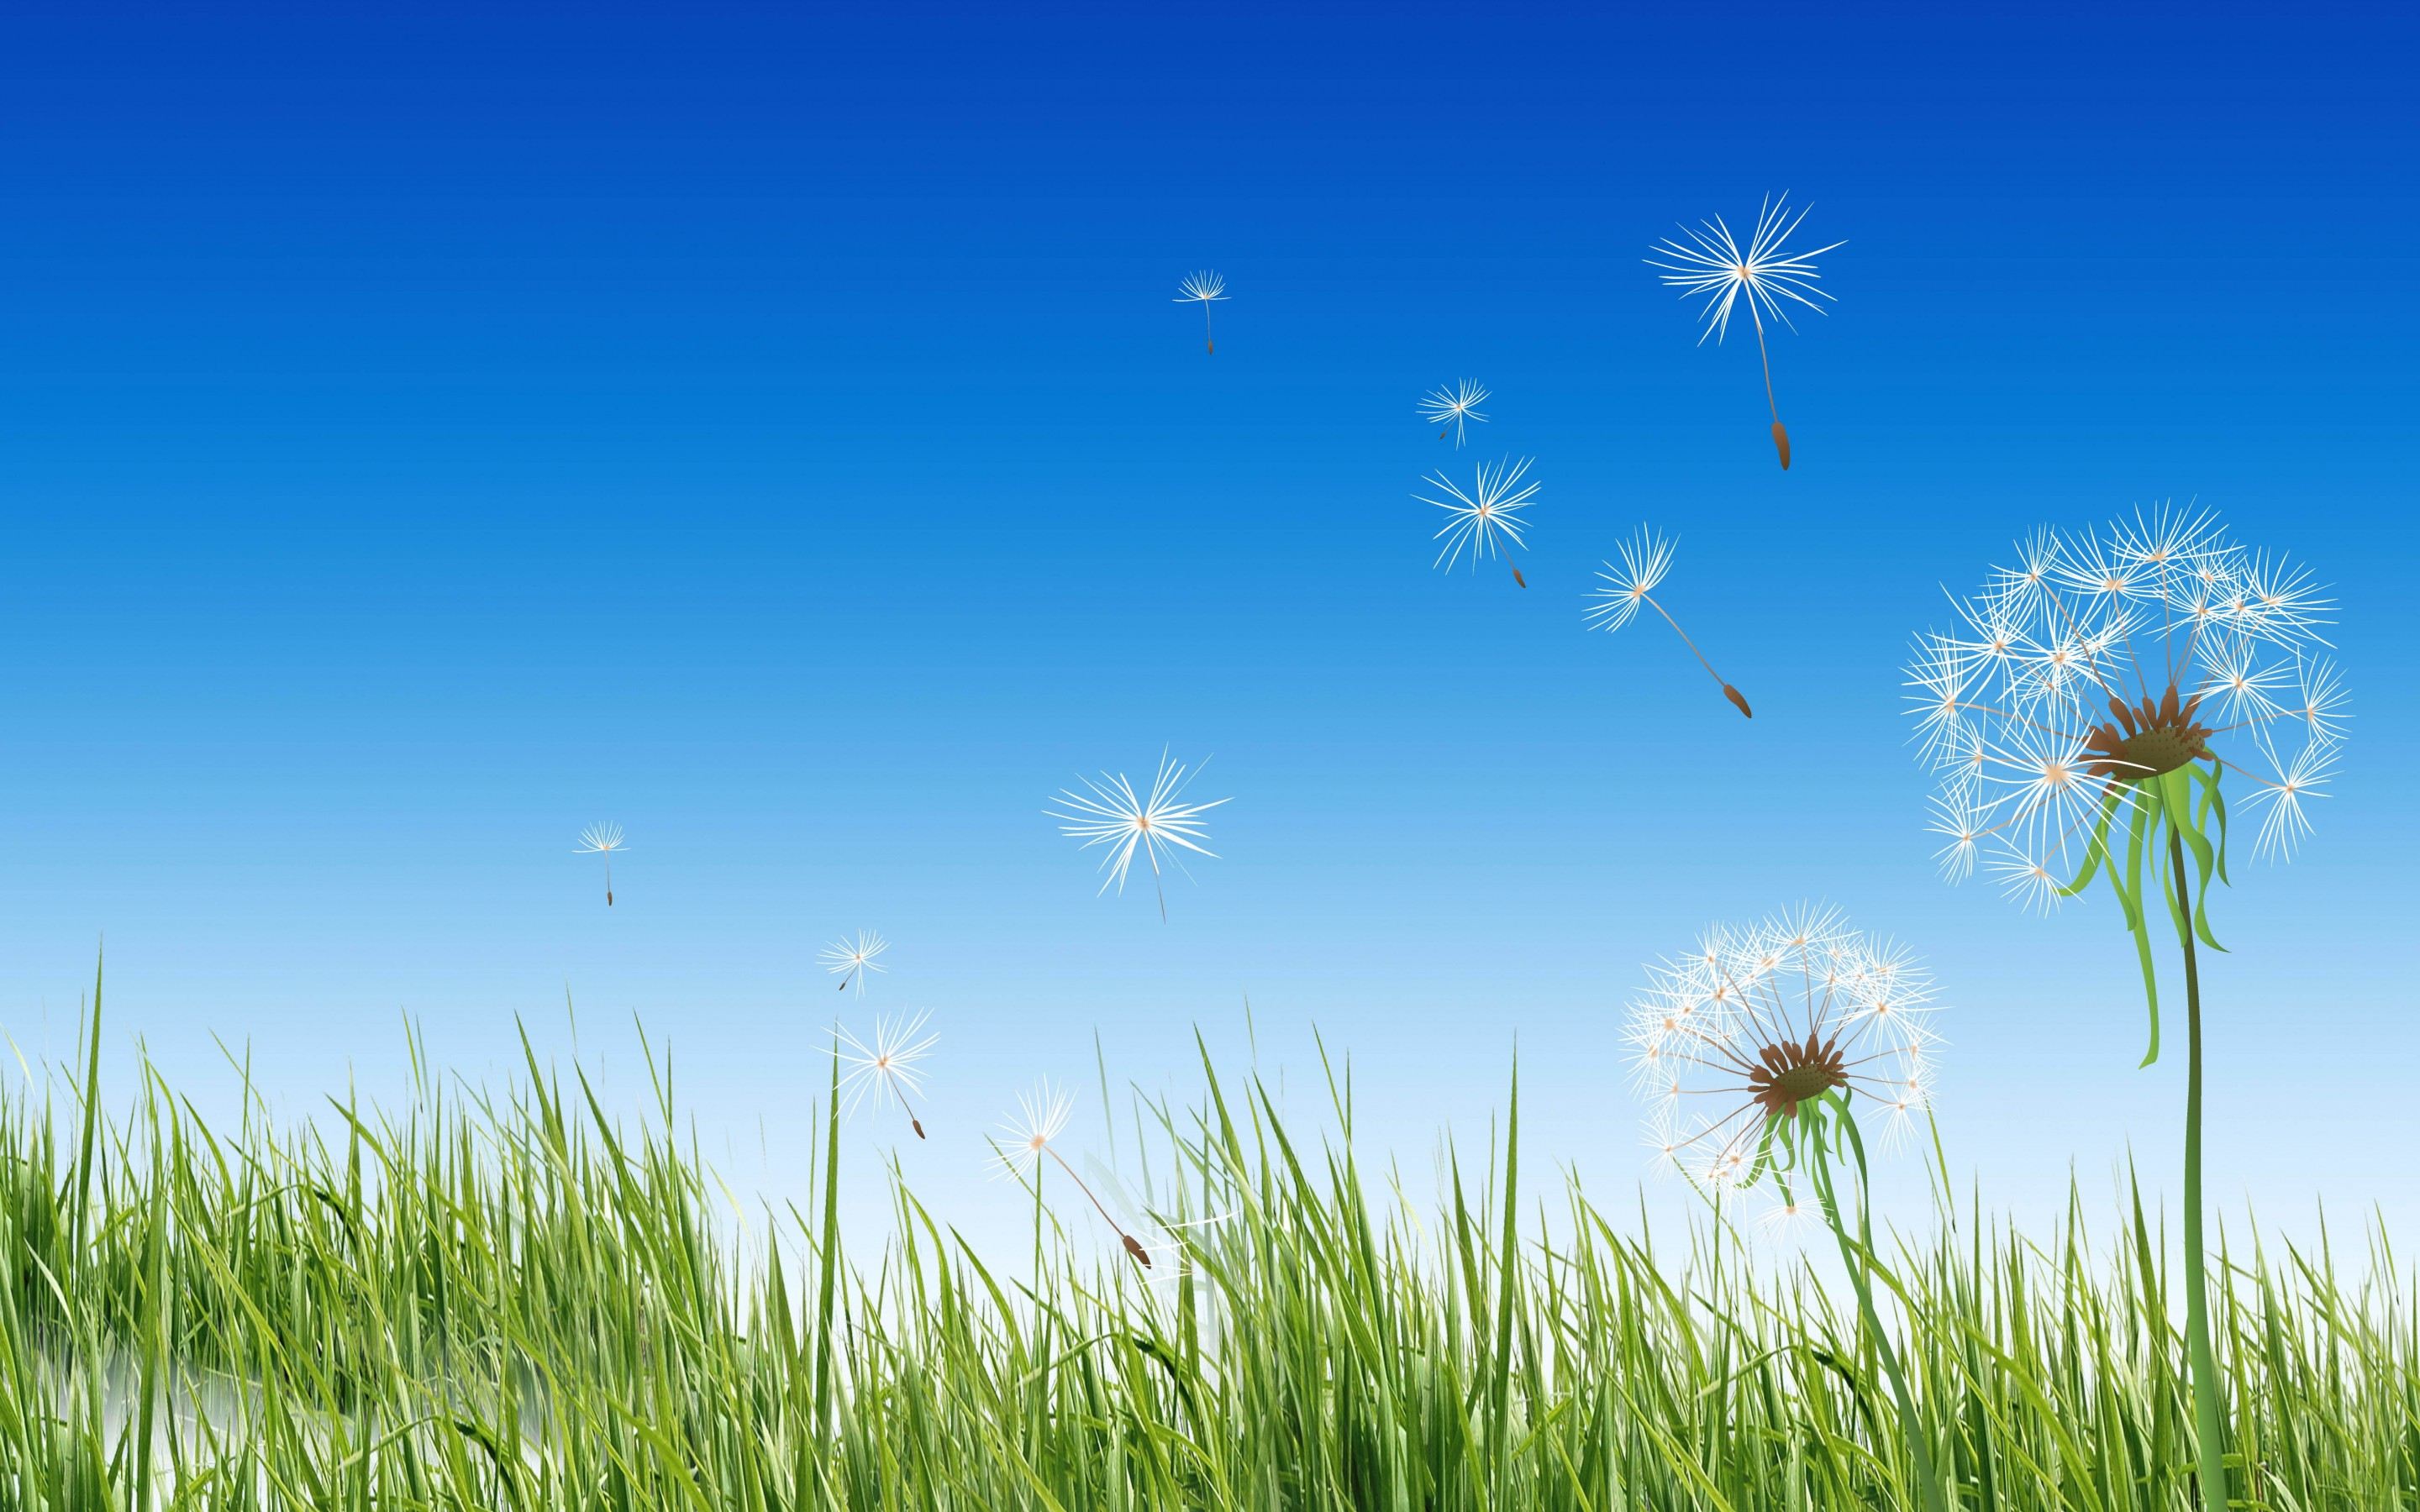 Dandelion Computer Wallpapers Desktop Backgrounds 2880x1800 ID 2880x1800